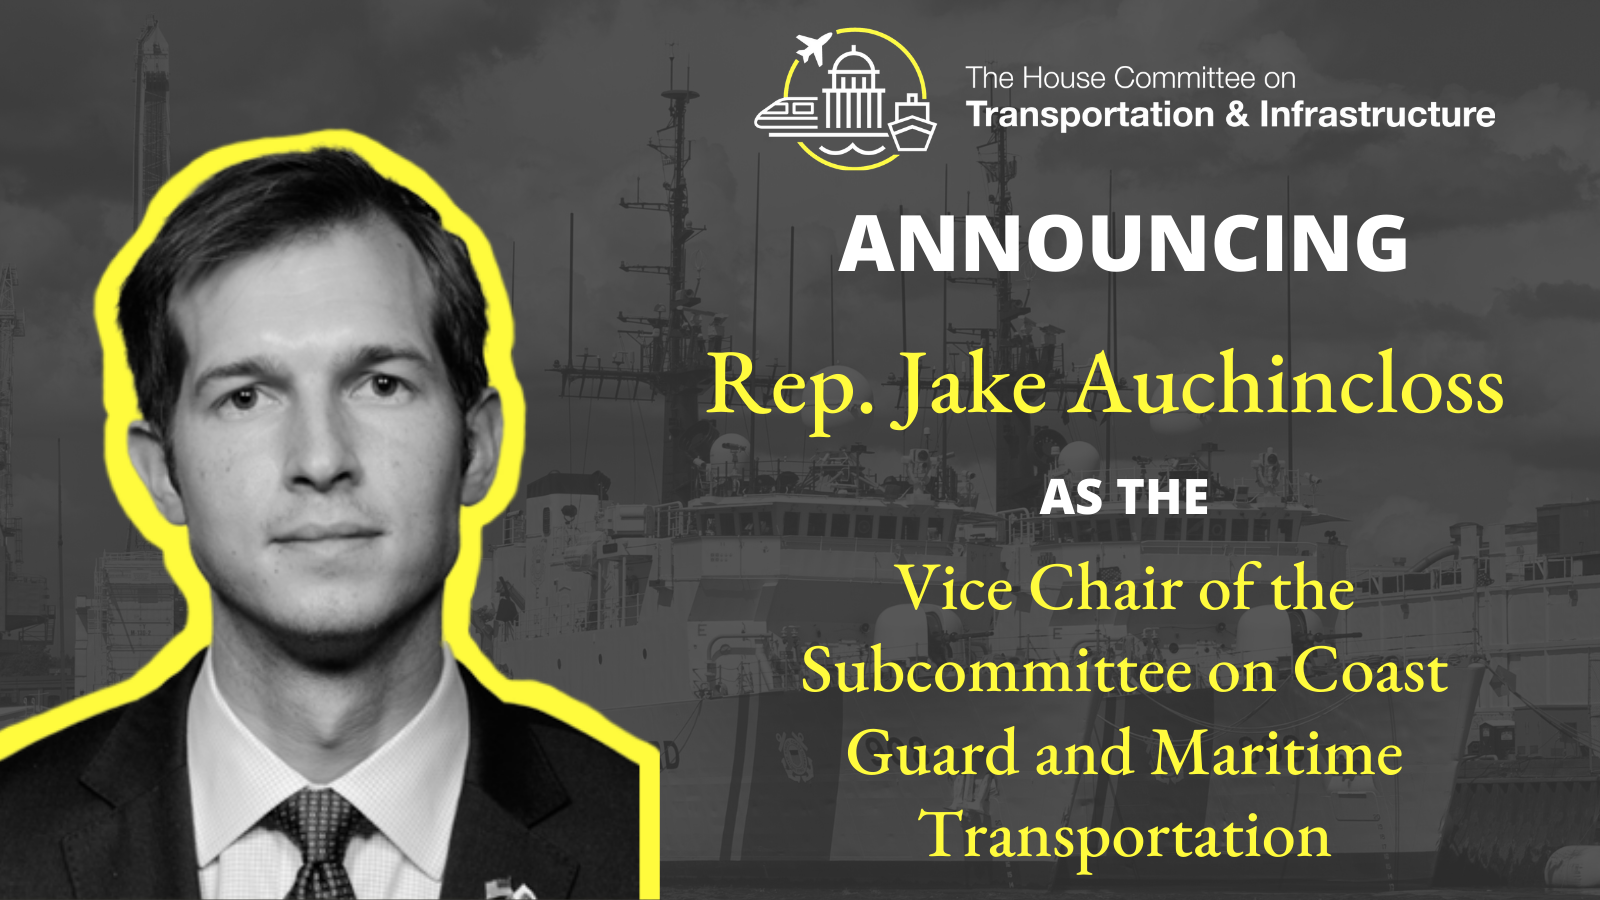 Vice Chair of Subcommittee on Coast Guard and Maritime Transportation 2021